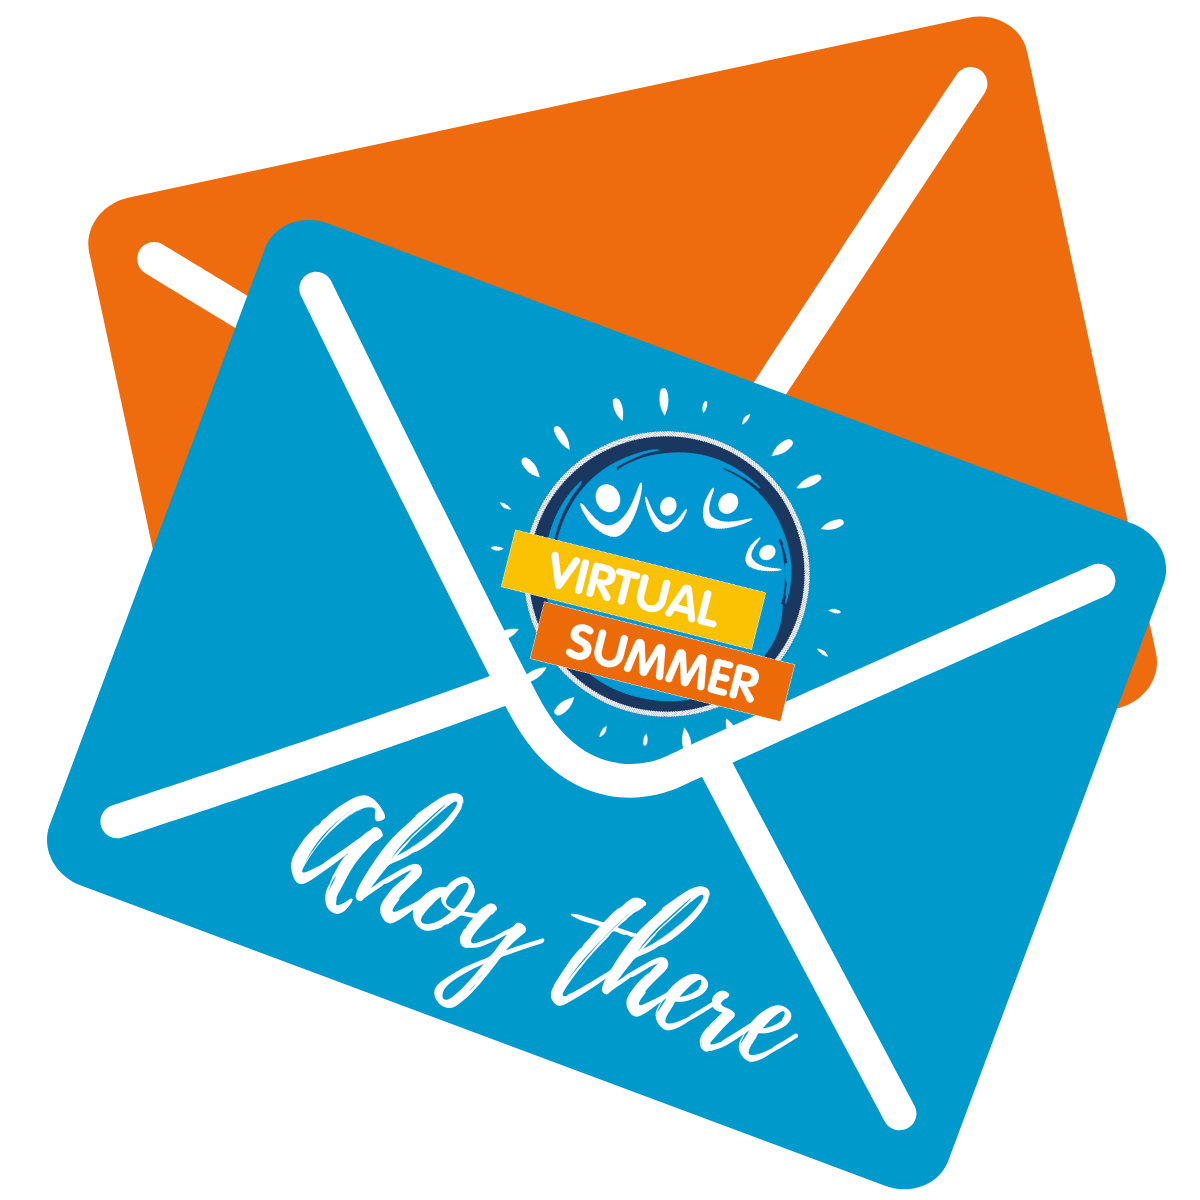 Graphic of two orange and blue envelopes with 'Ahoy there' written on them